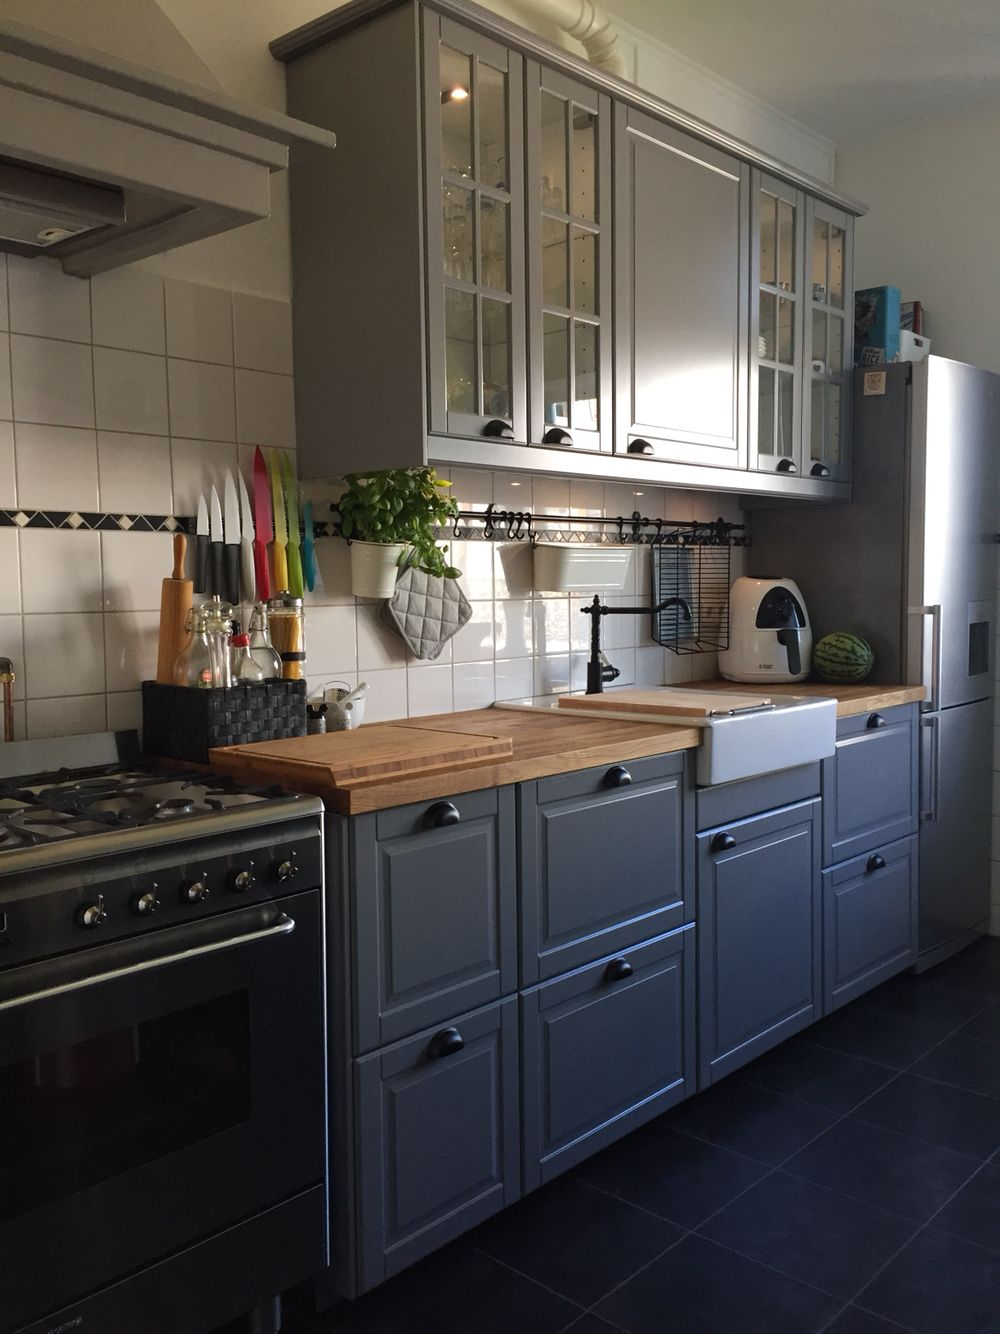 Best New Kitchen Ikea Bodbyn Grey Ikea Bodbyn Pinterest 640 x 480